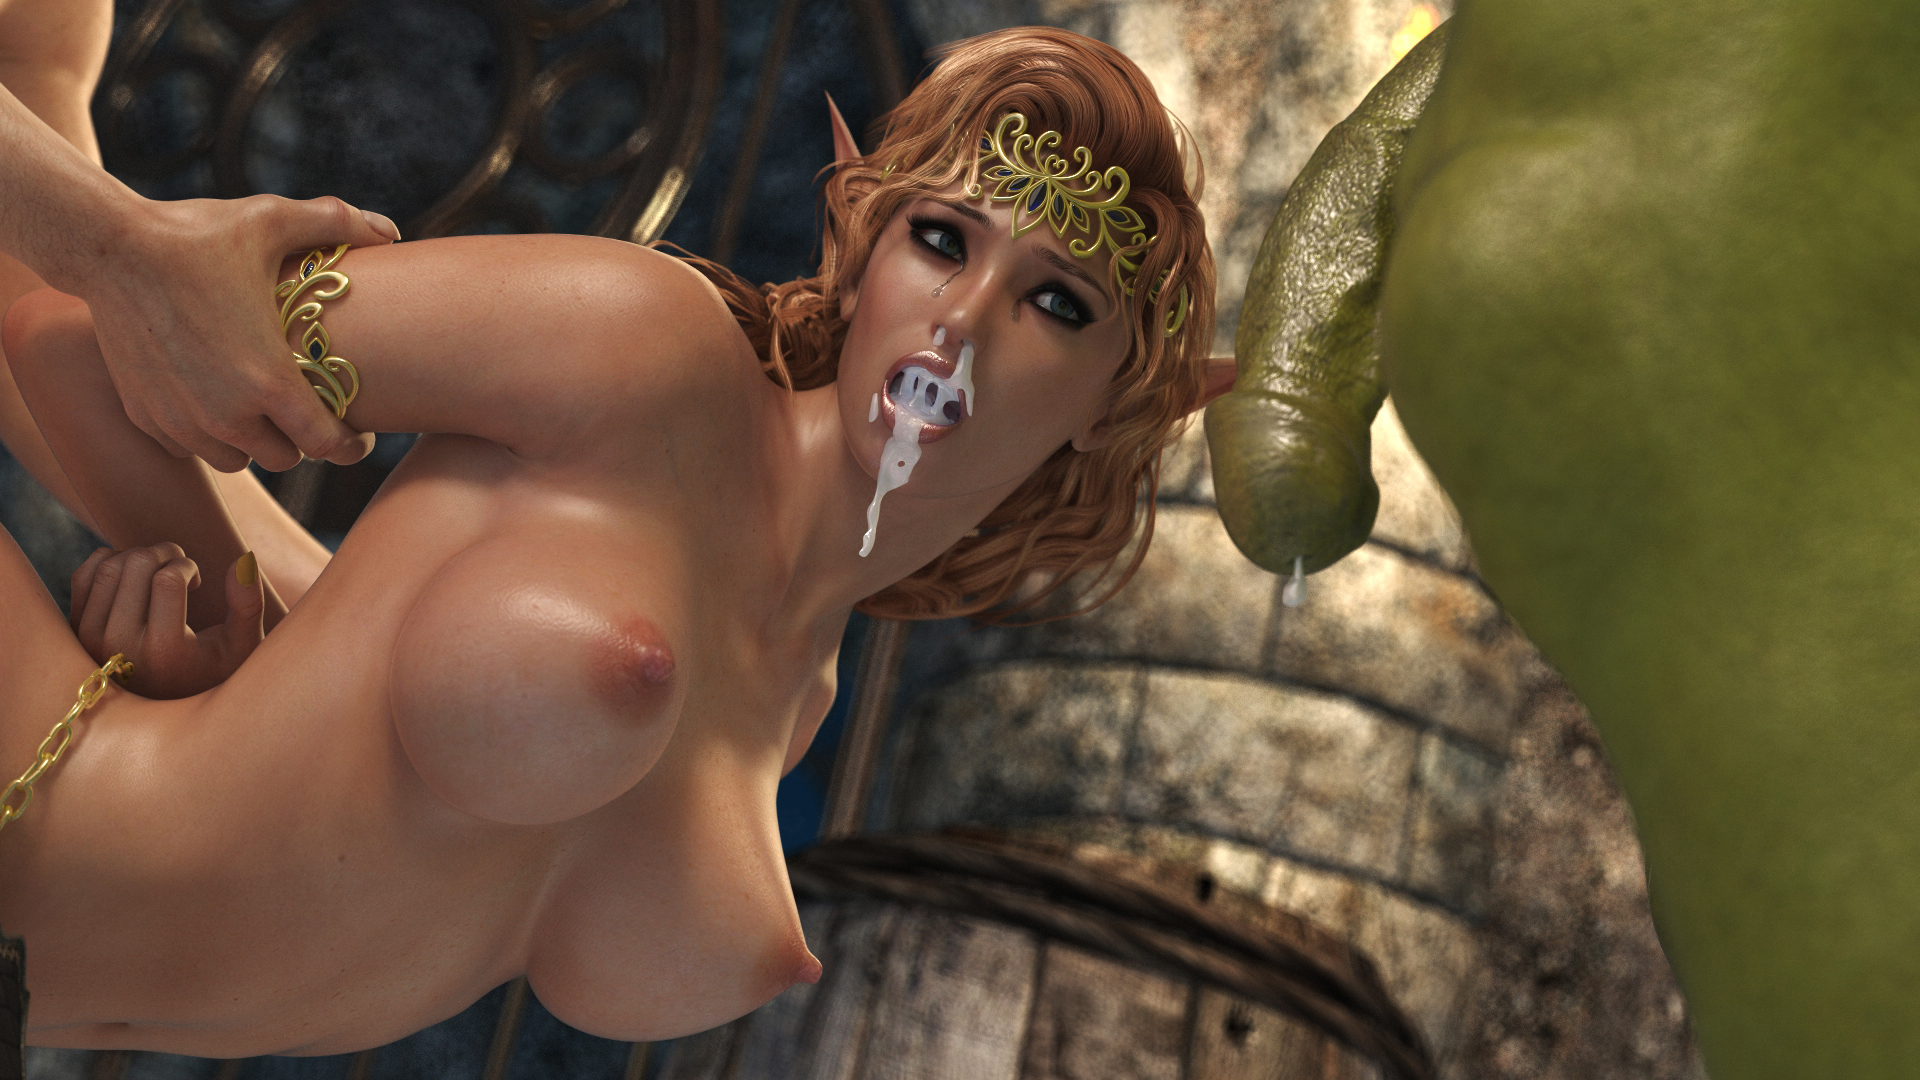 Porno monsters elven sex clips